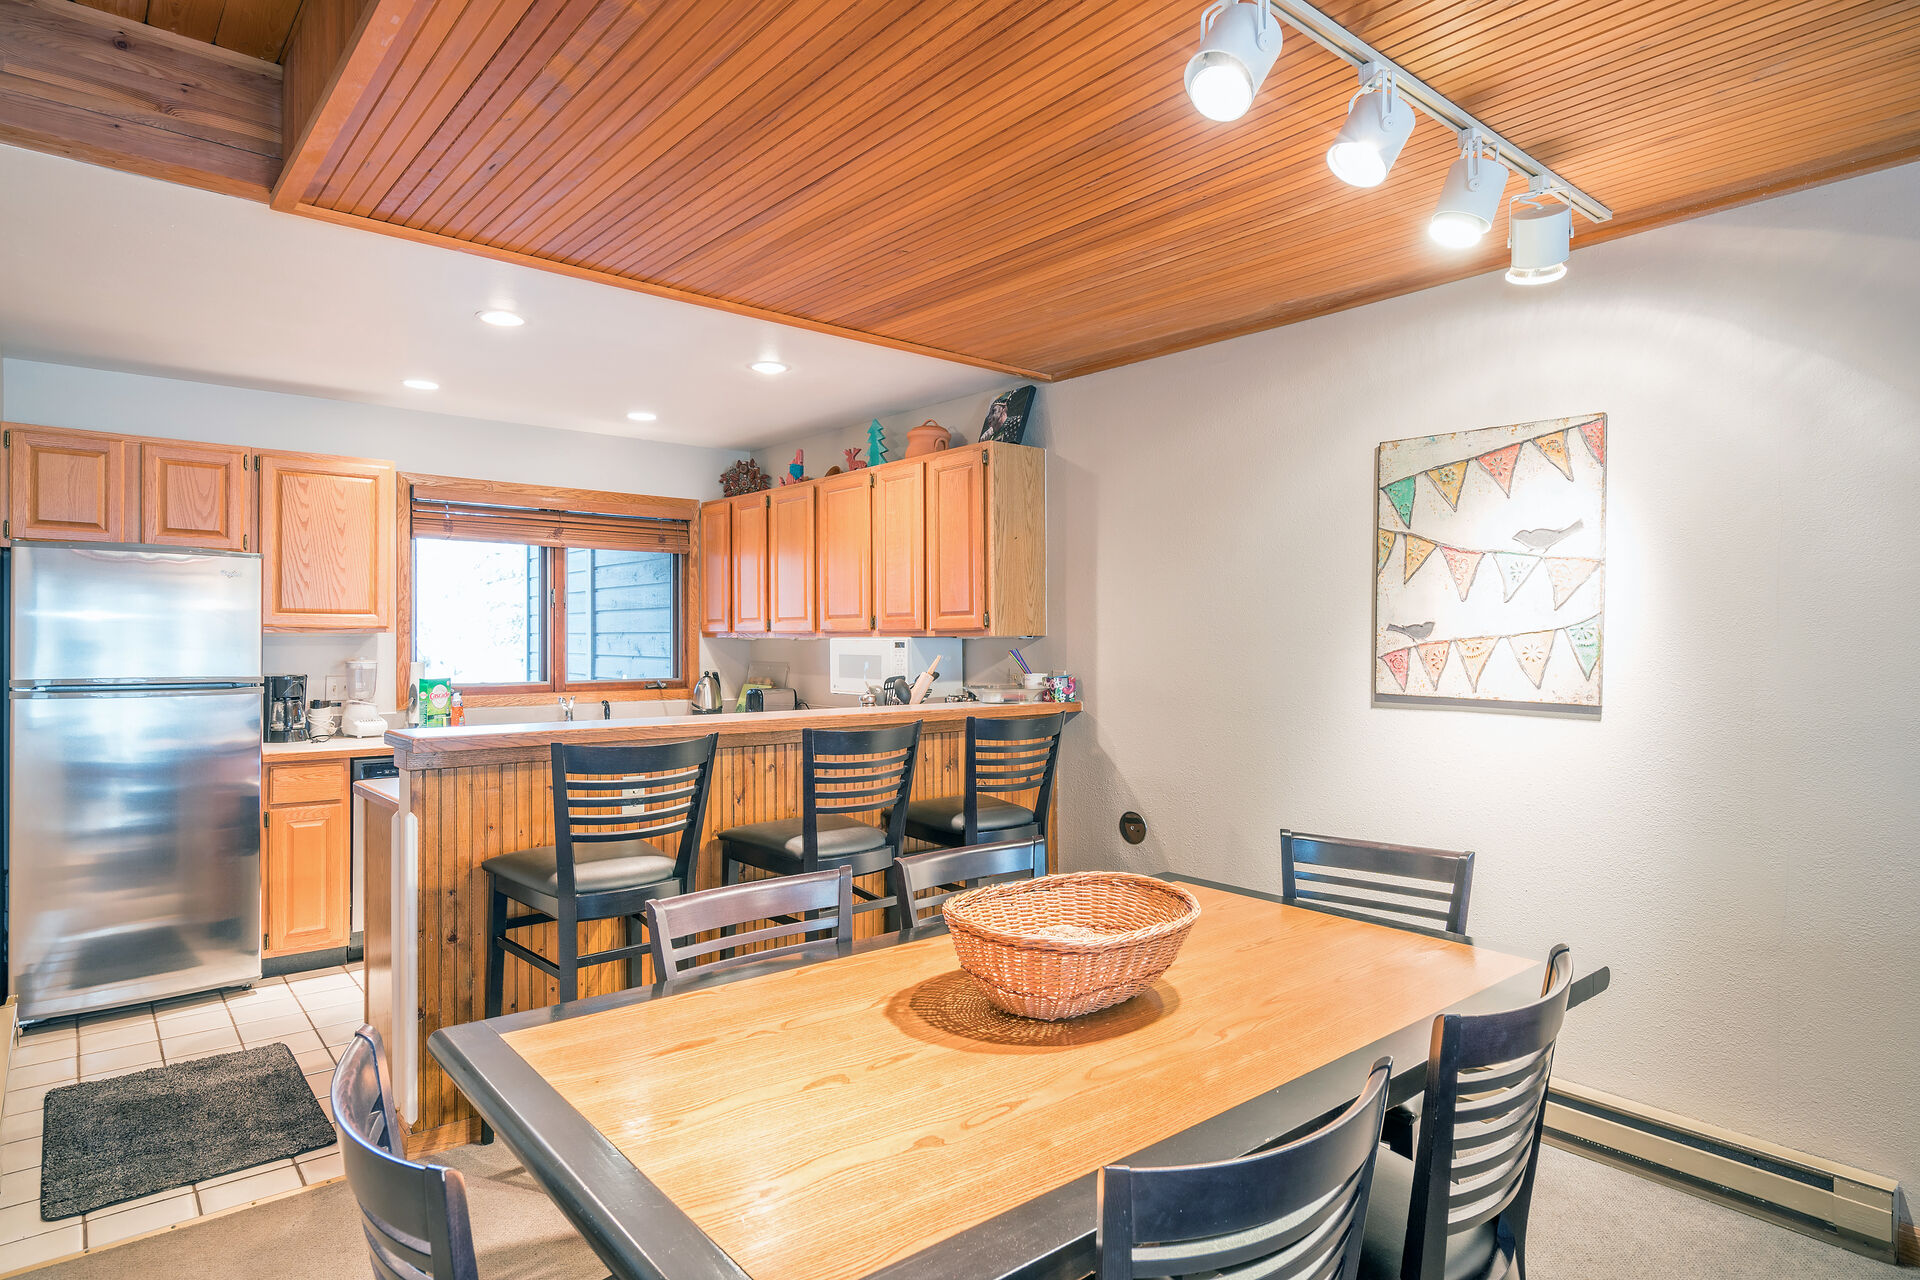 Dining room and kitchen with wood accents